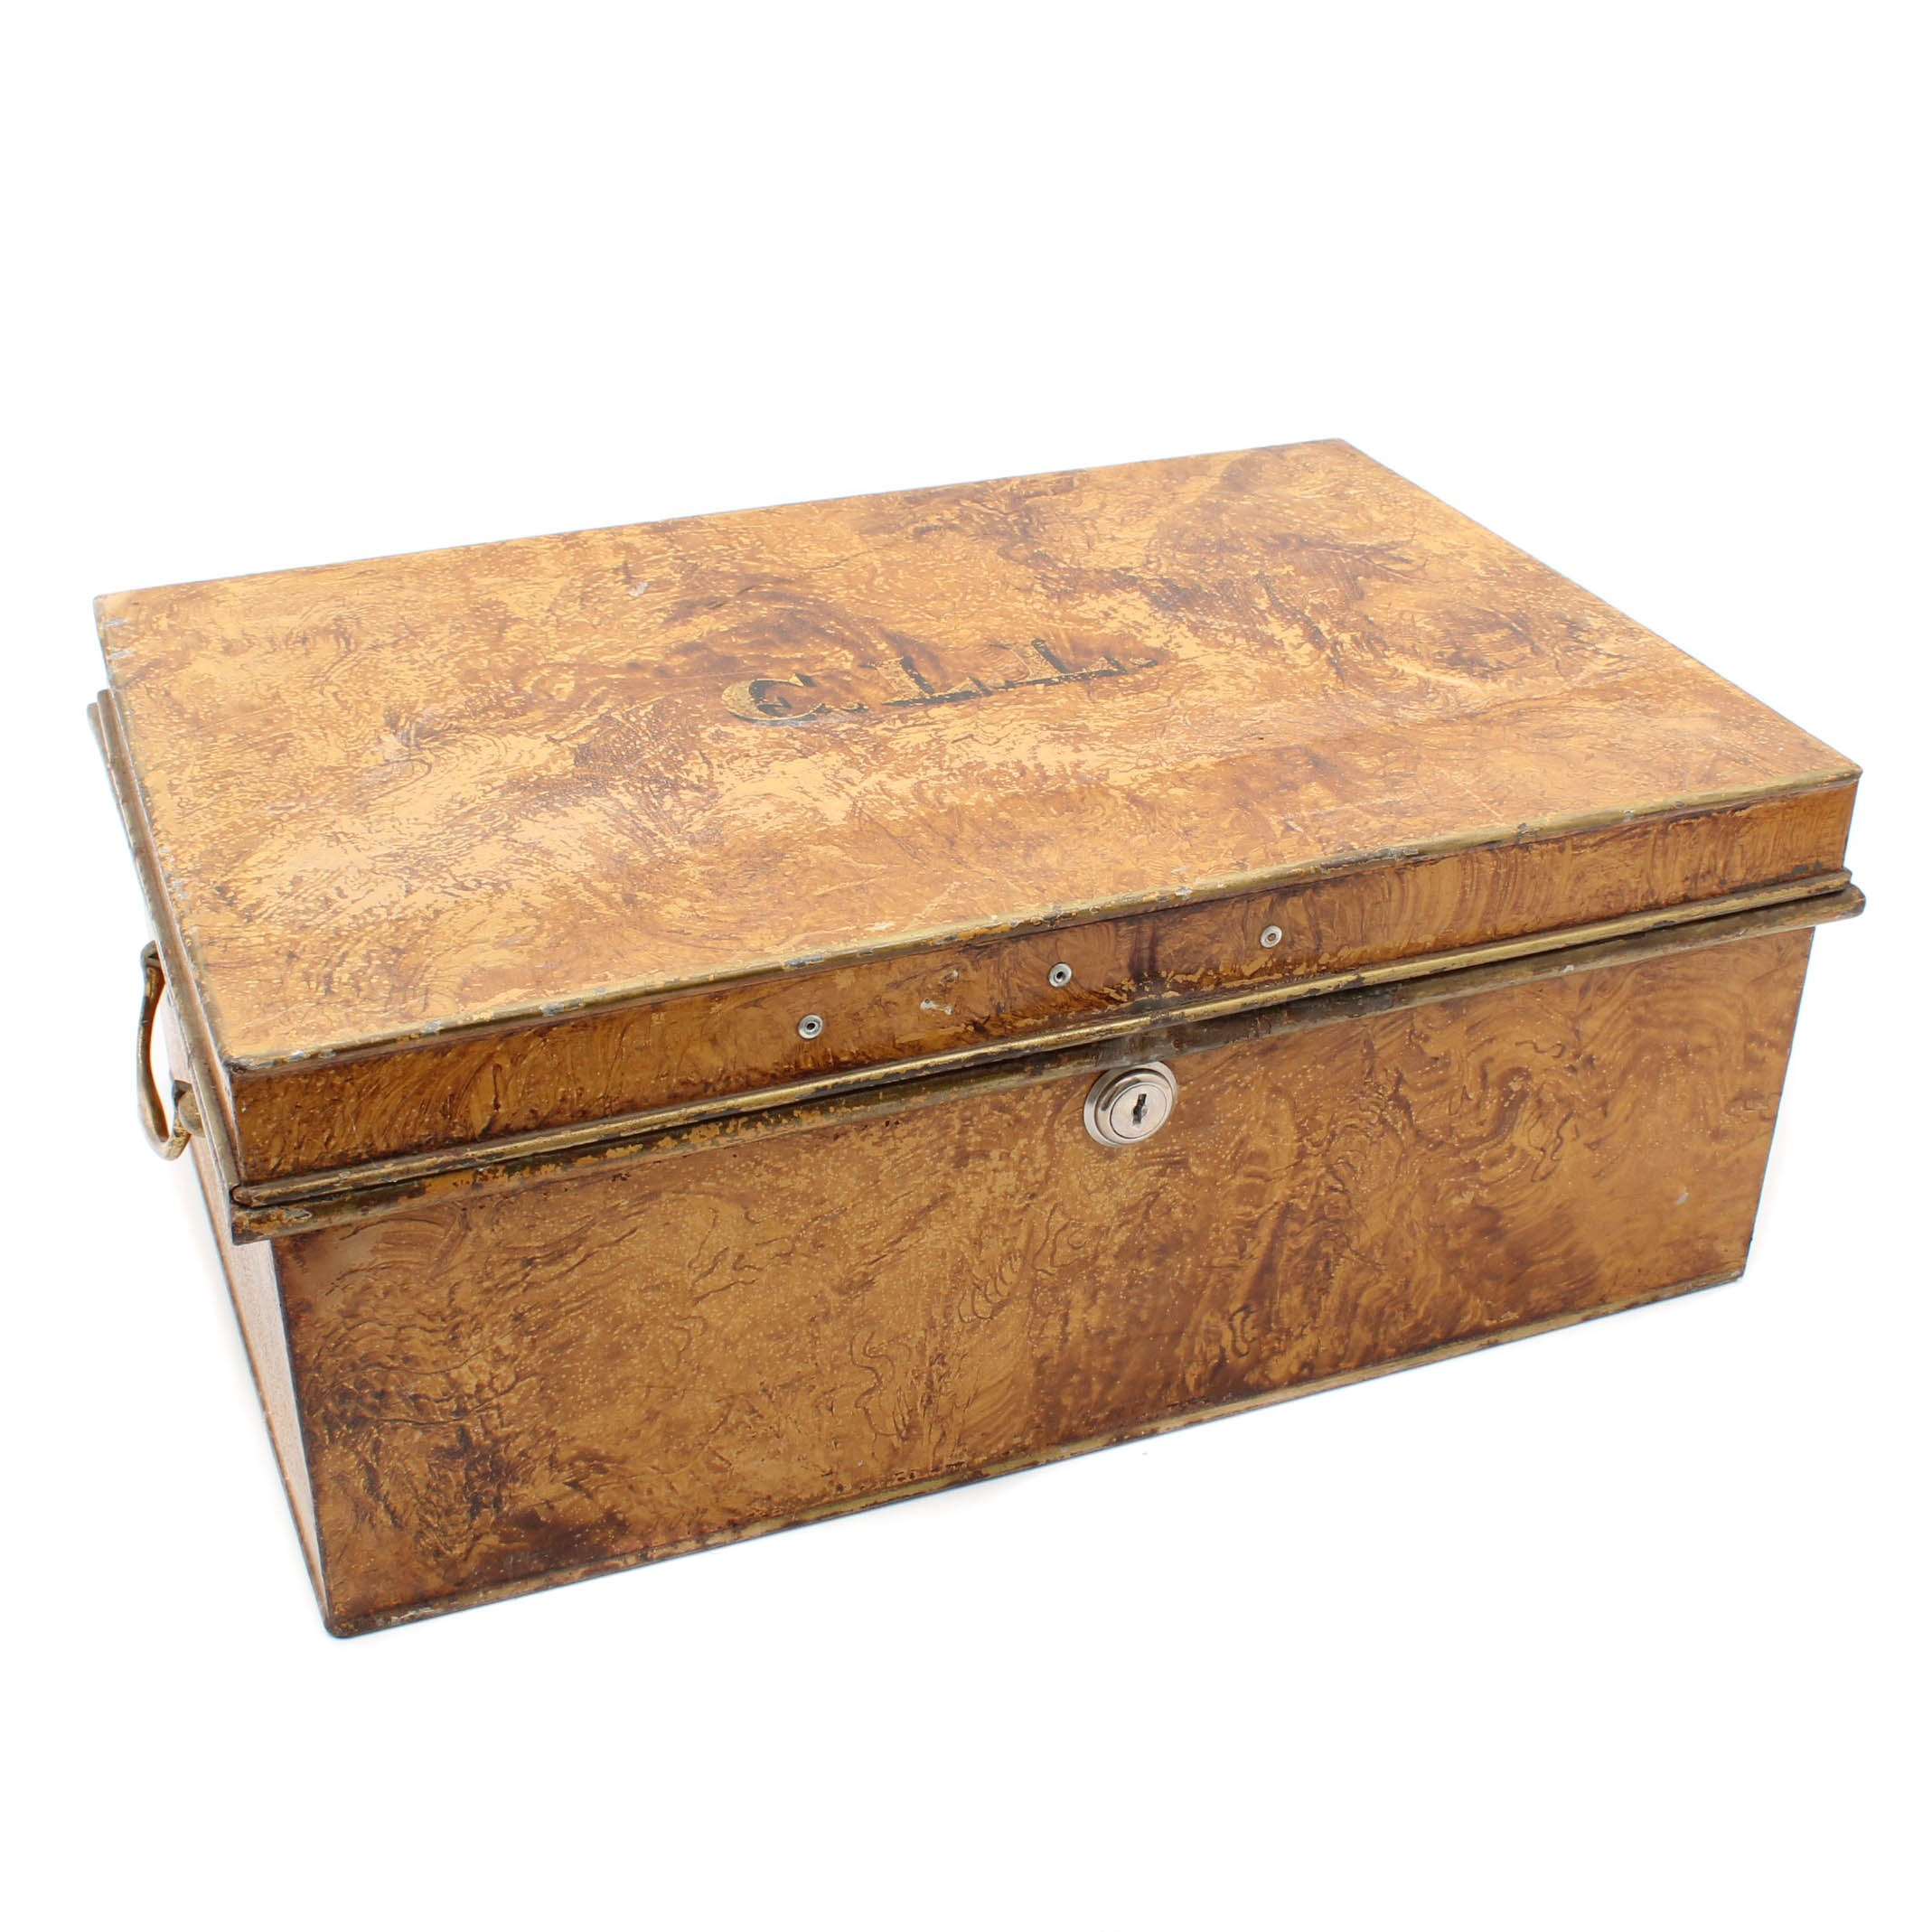 Vintage C. Chubb & Son Metal Lockbox